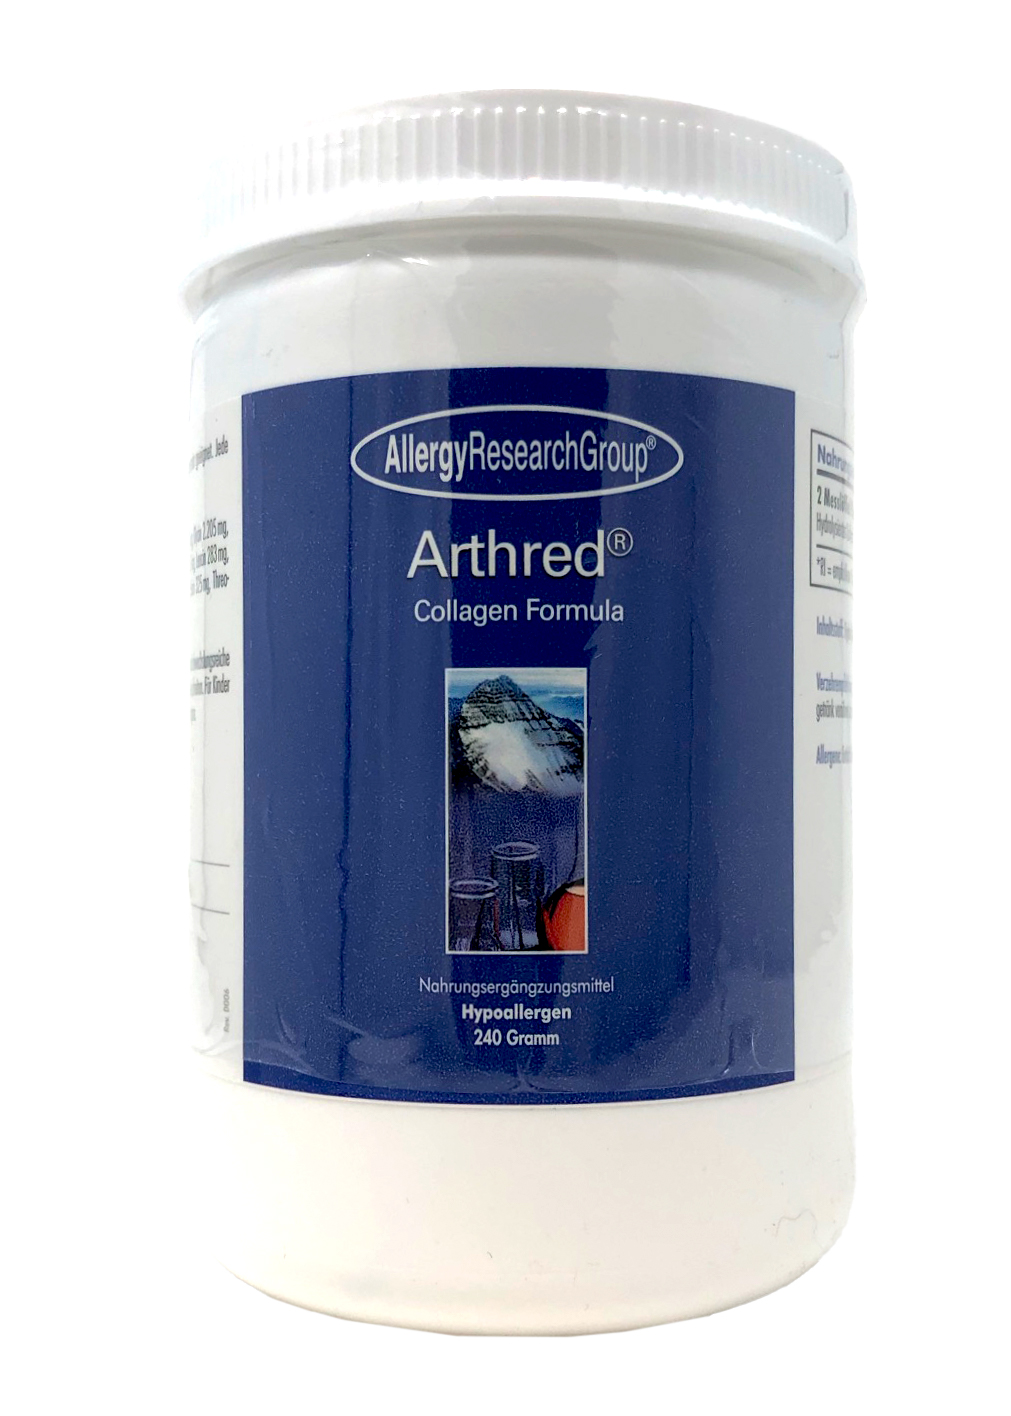 Allergy Research Group Arthred® Collagen Formula (Hydrolysiertes Kollagen) 240g Pulver